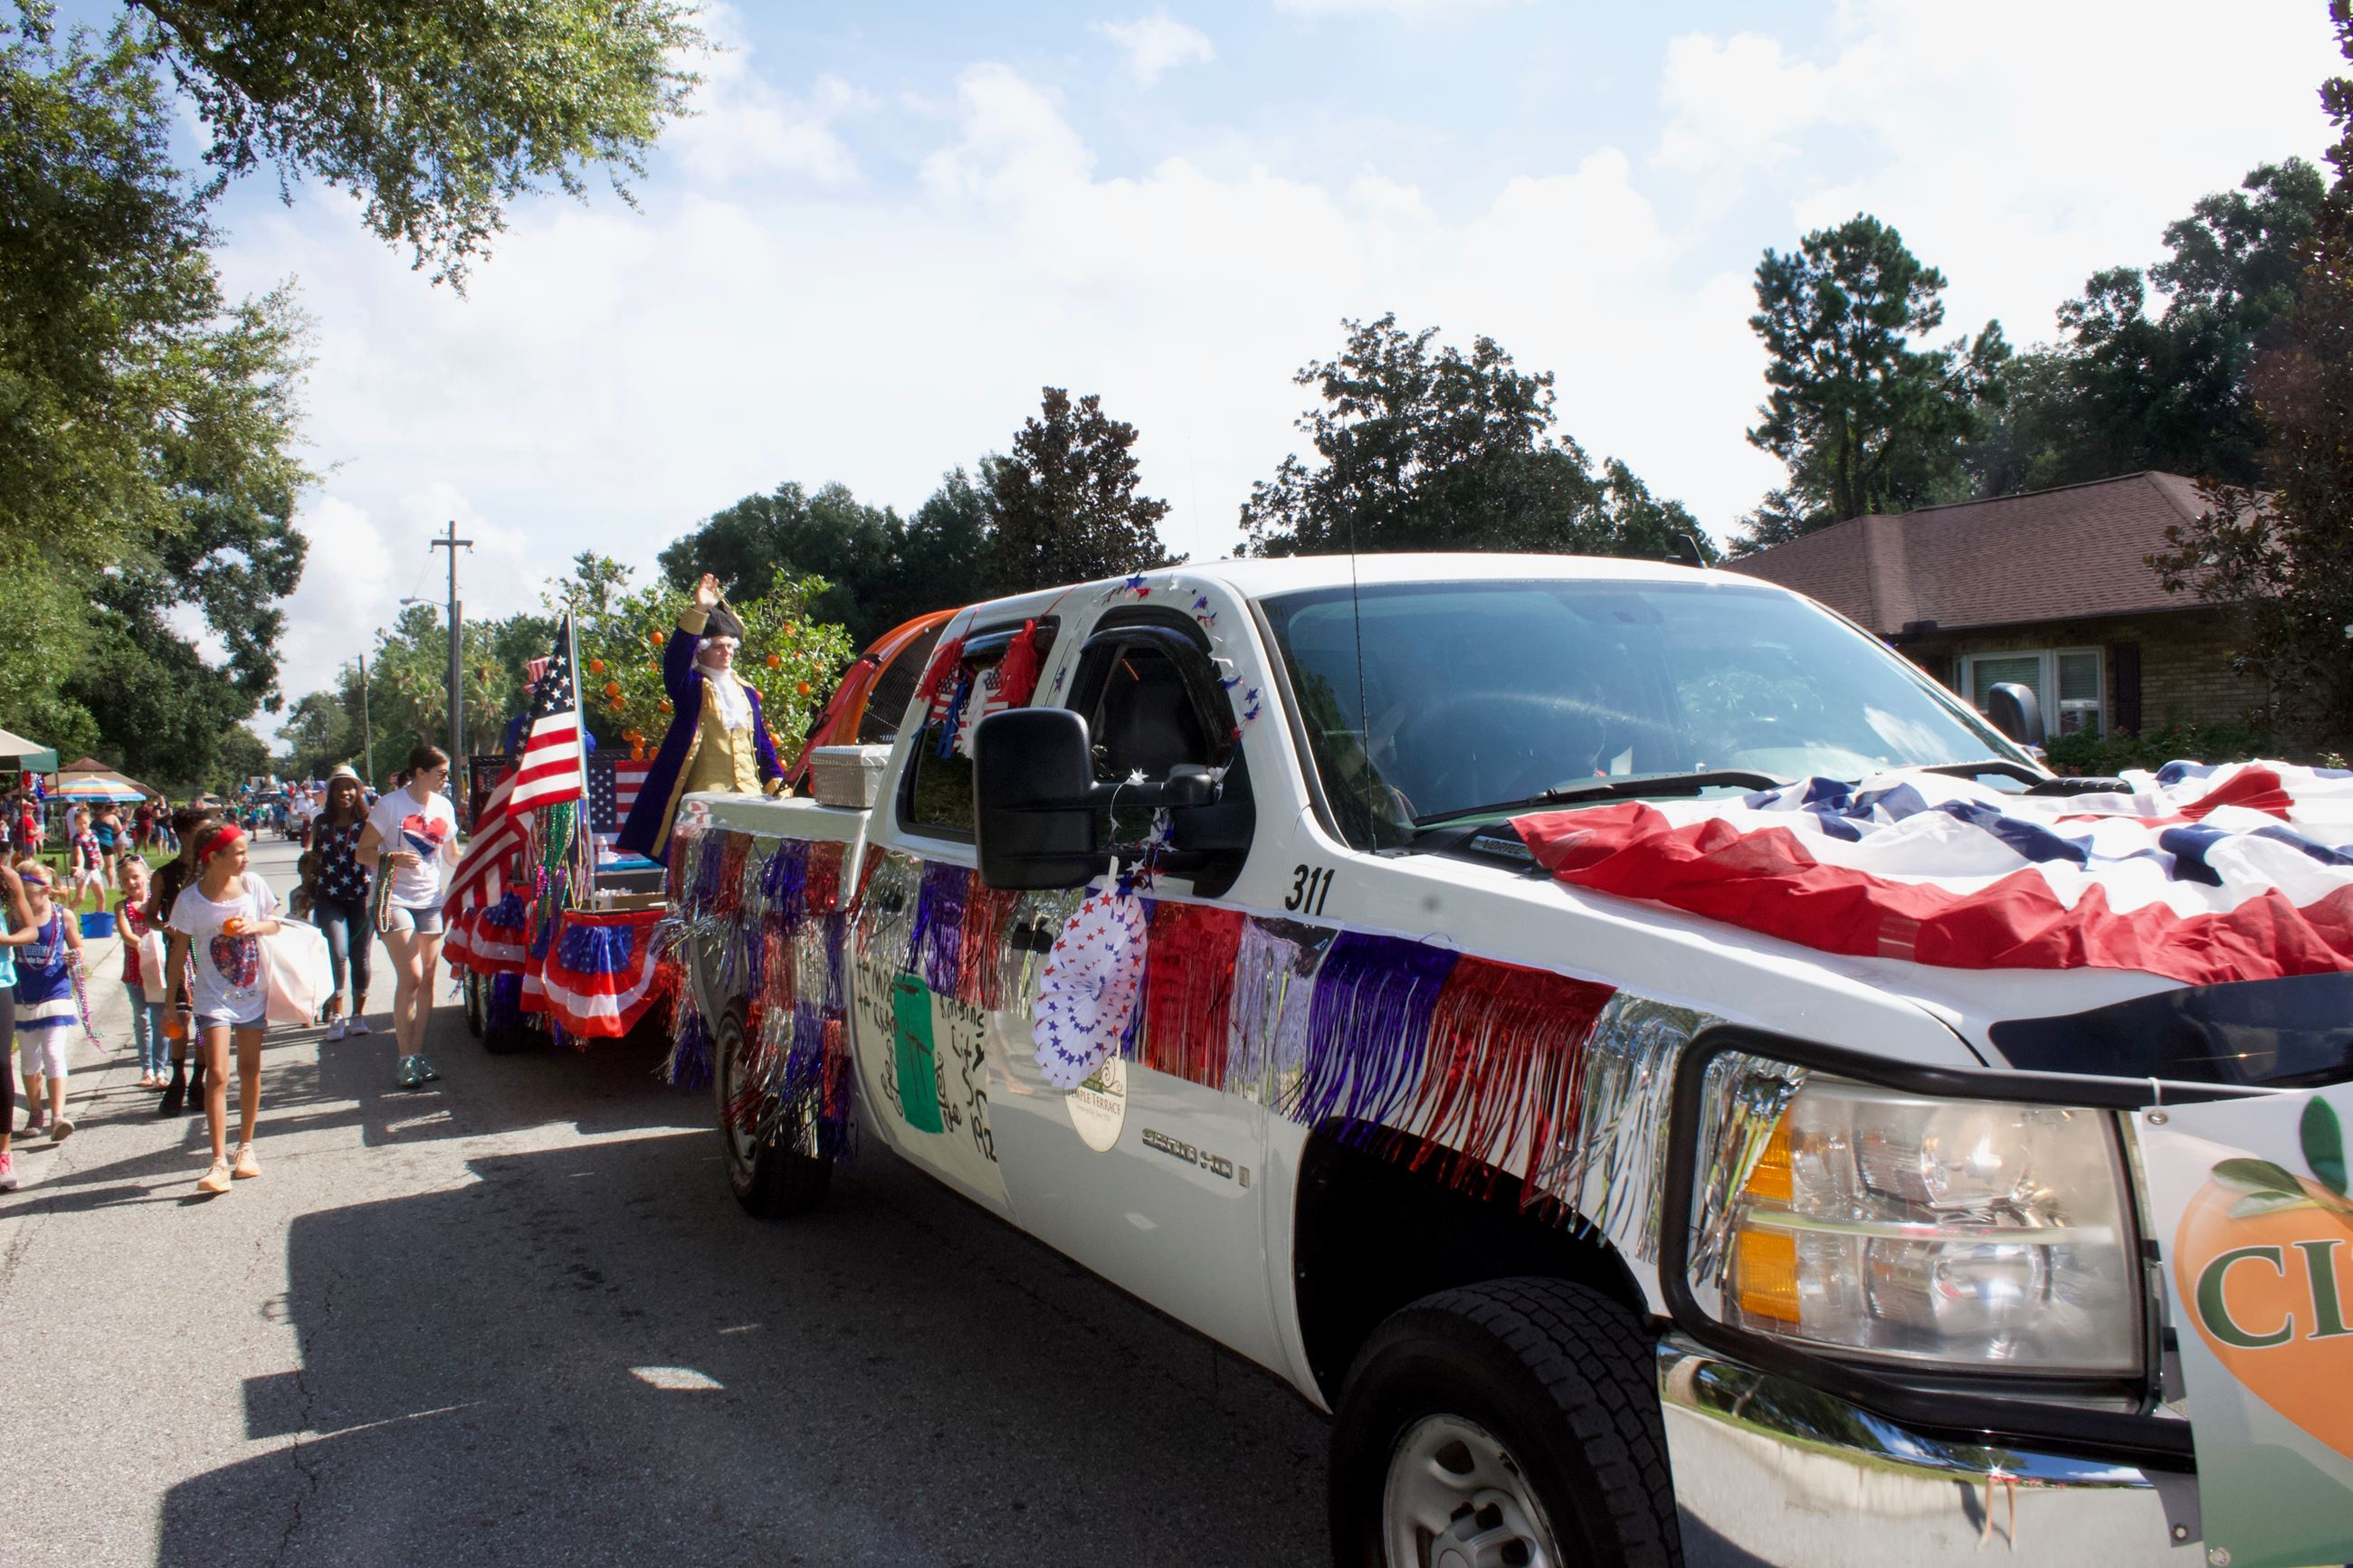 The City Float in the annual July 4 Parade